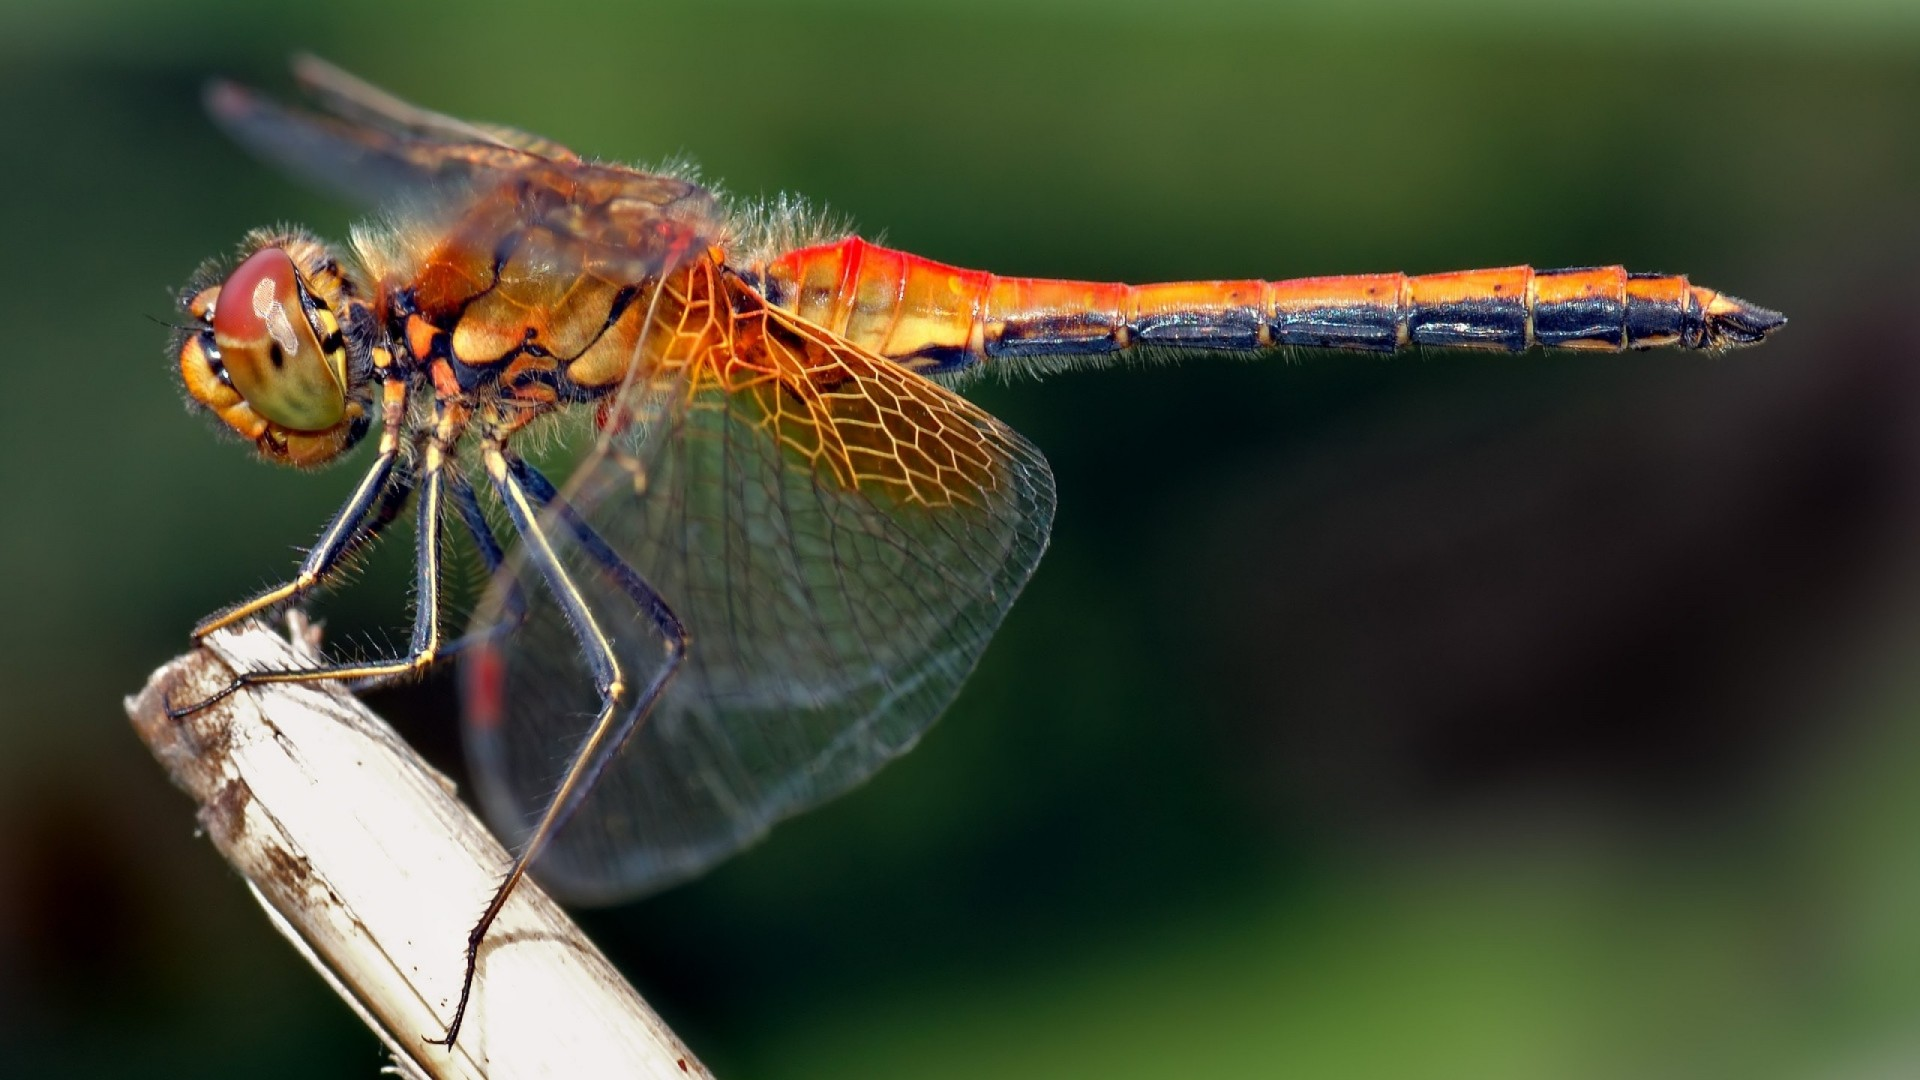 Res: 1920x1080, Download now full hd wallpaper dragonfly stick wing insect variegated ...